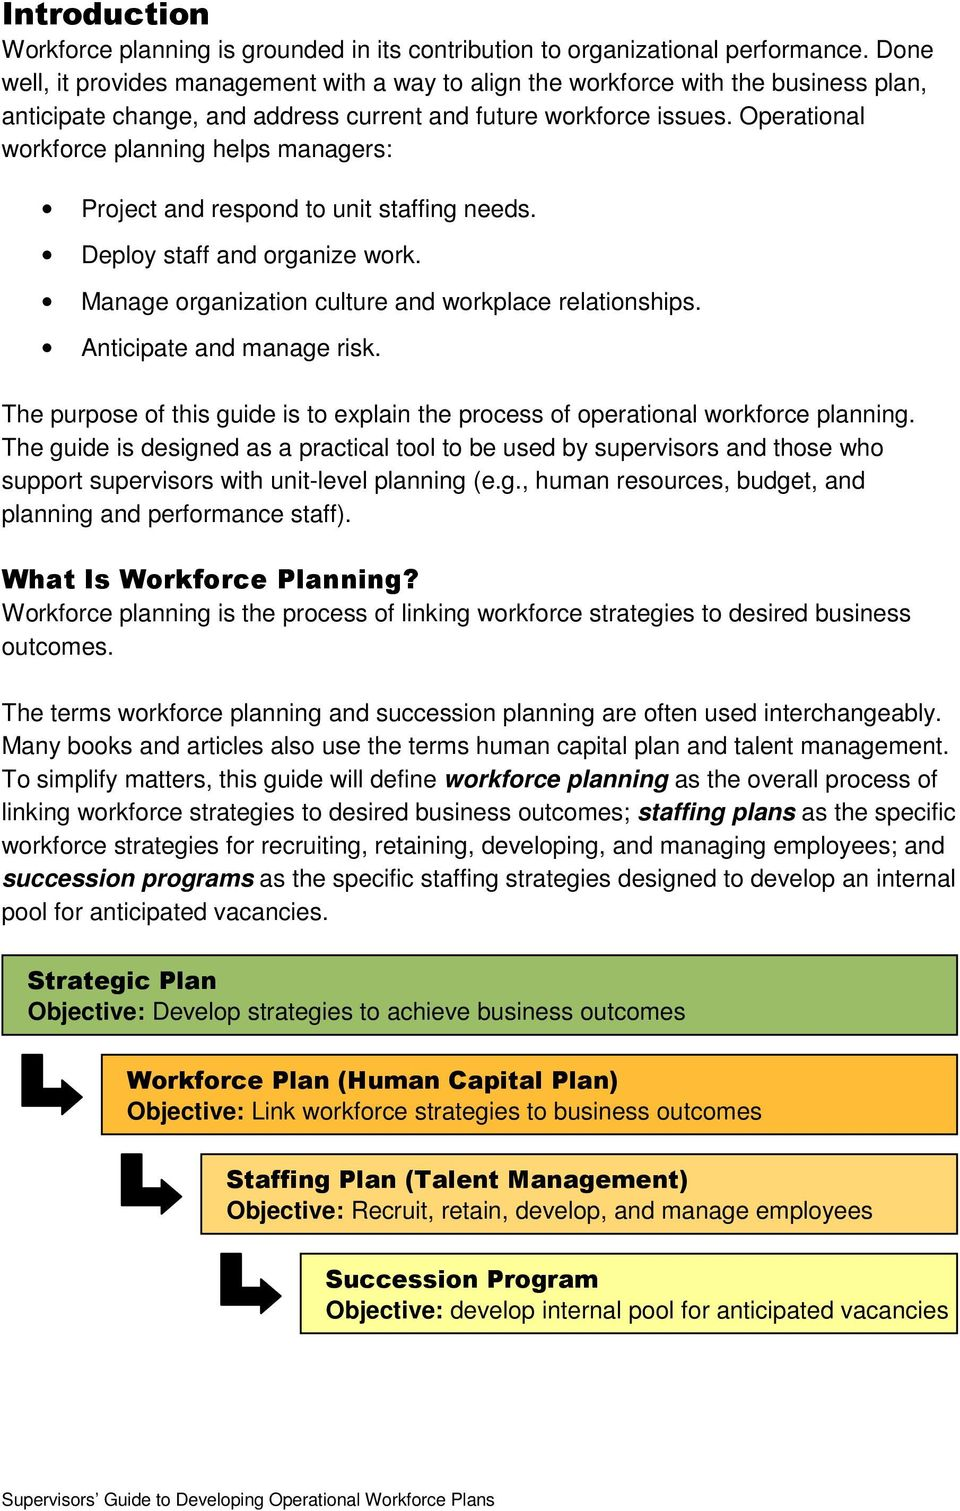 Operational workforce planning helps managers: Project and respond to unit staffing needs. Deploy staff and organize work. Manage organization culture and workplace relationships.